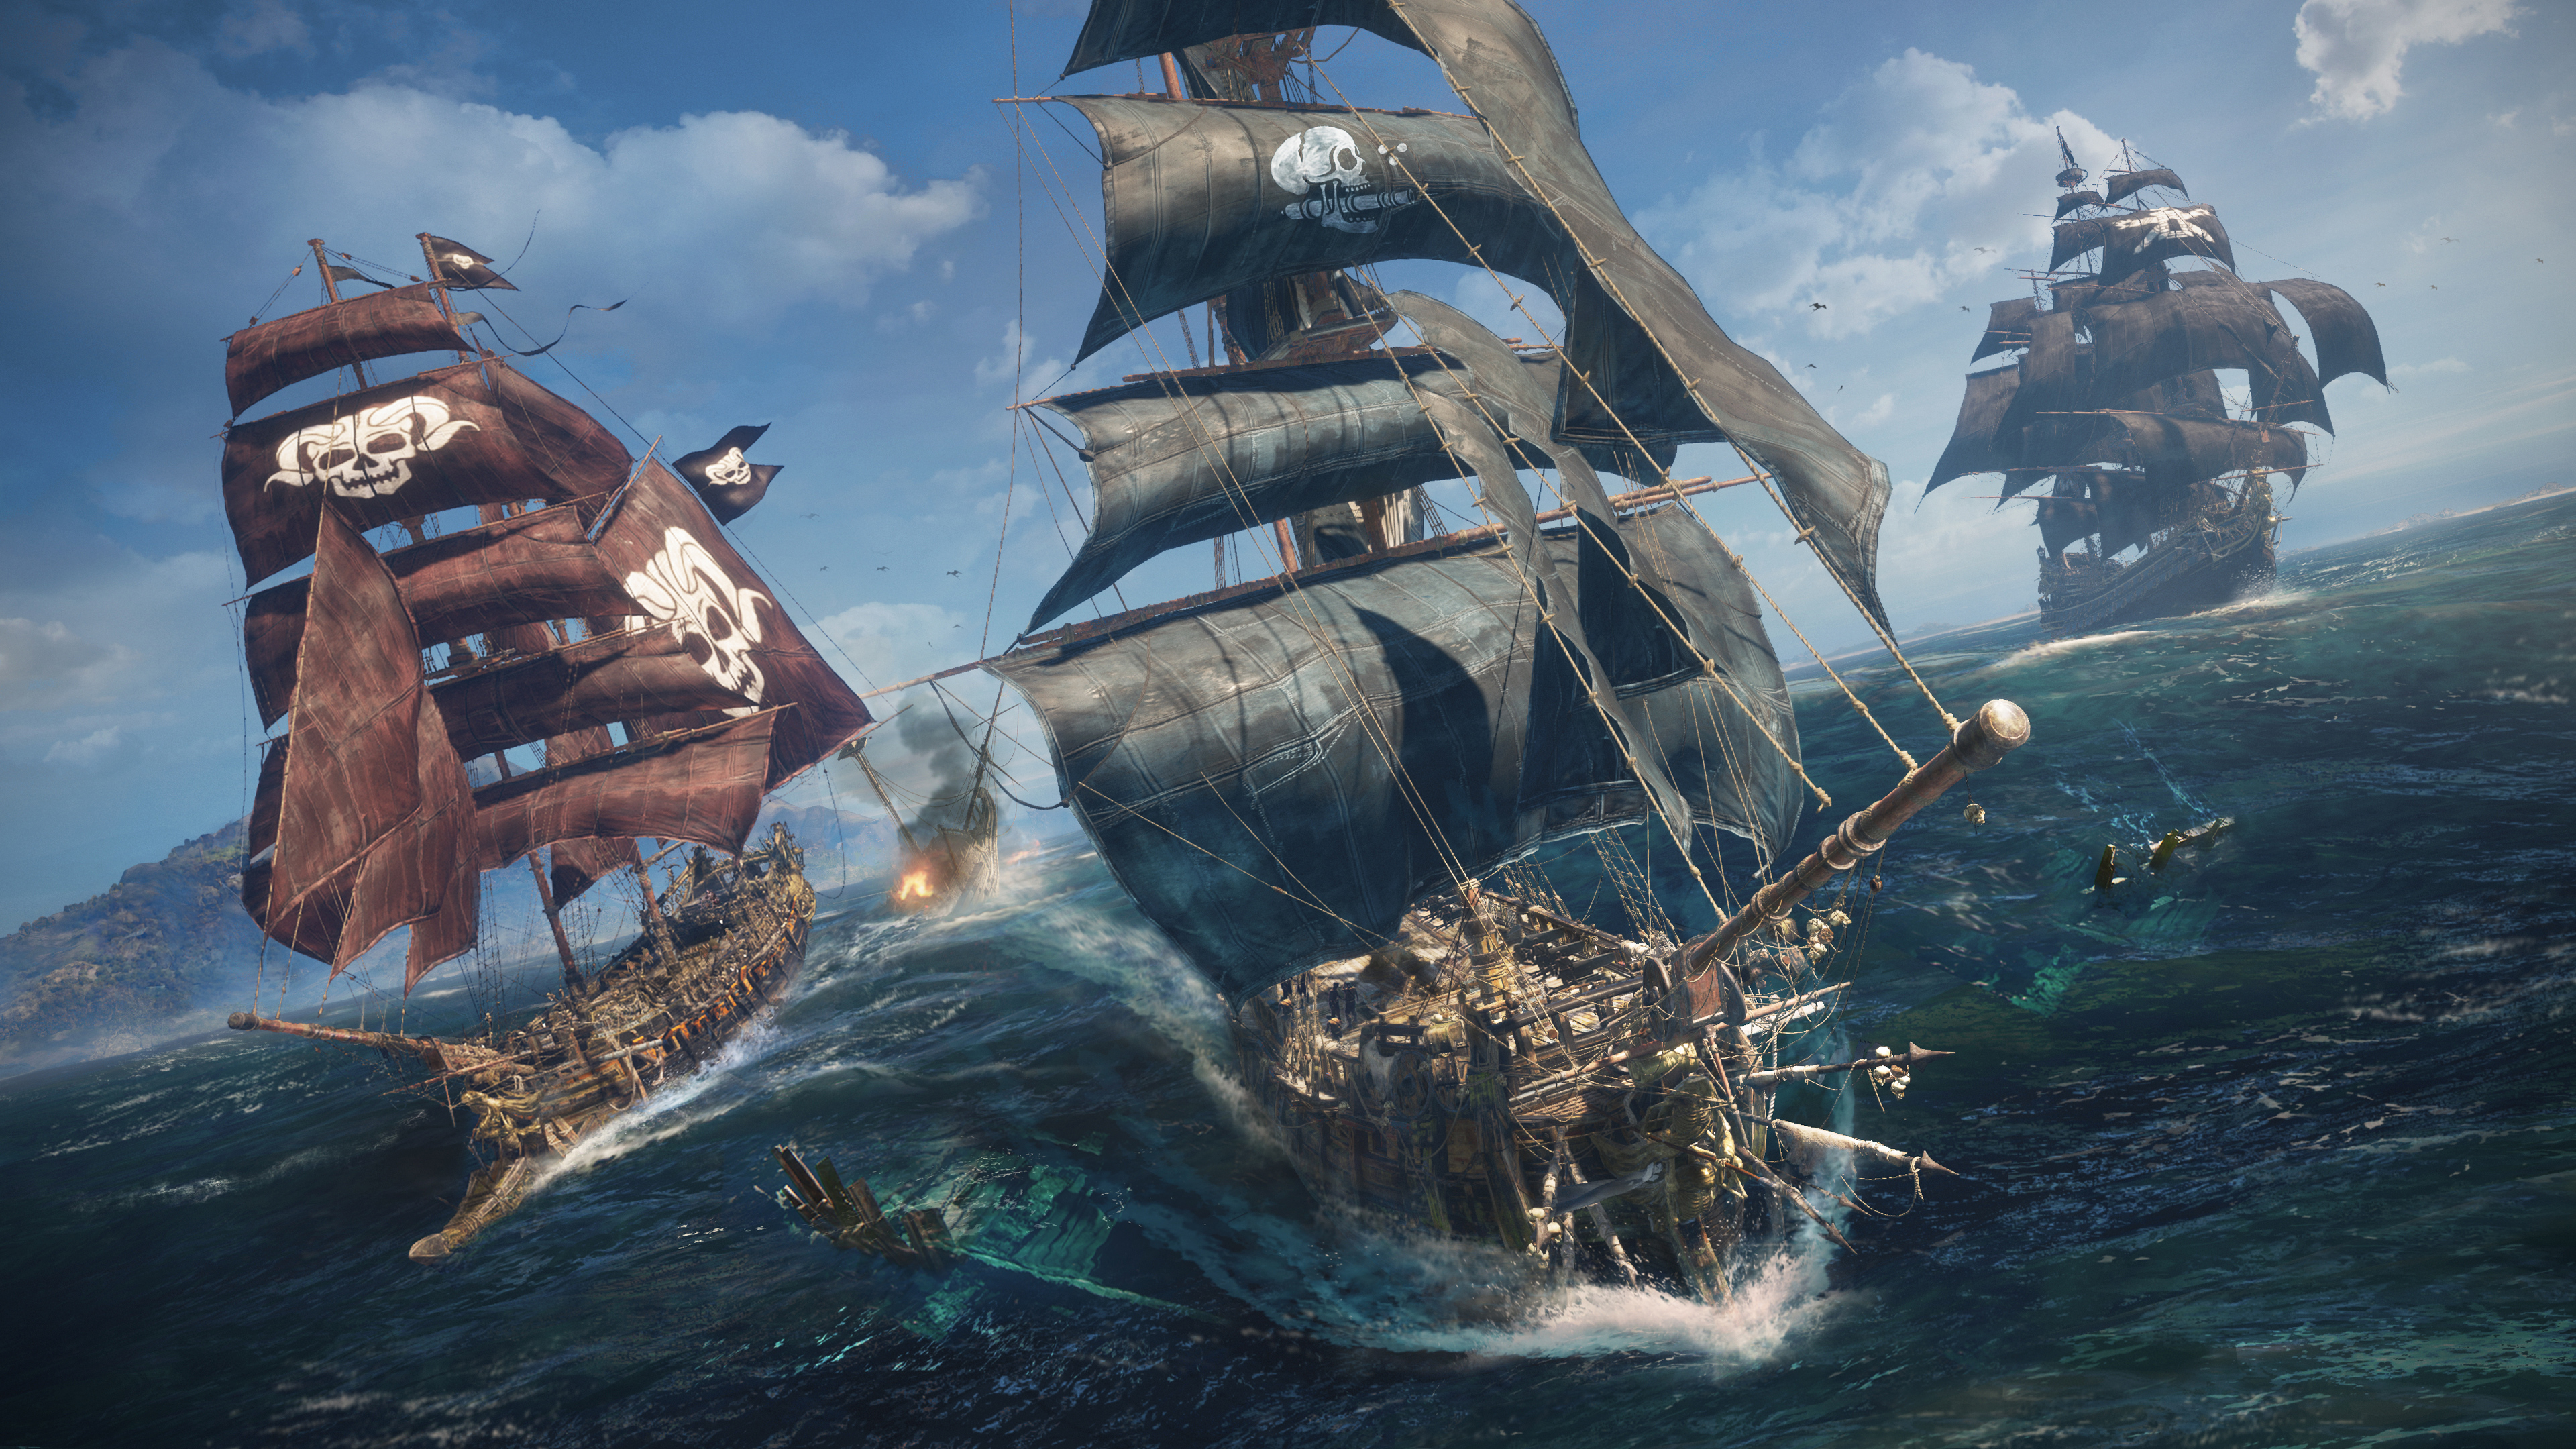 Skull & Bones delayed again, this time to 2020